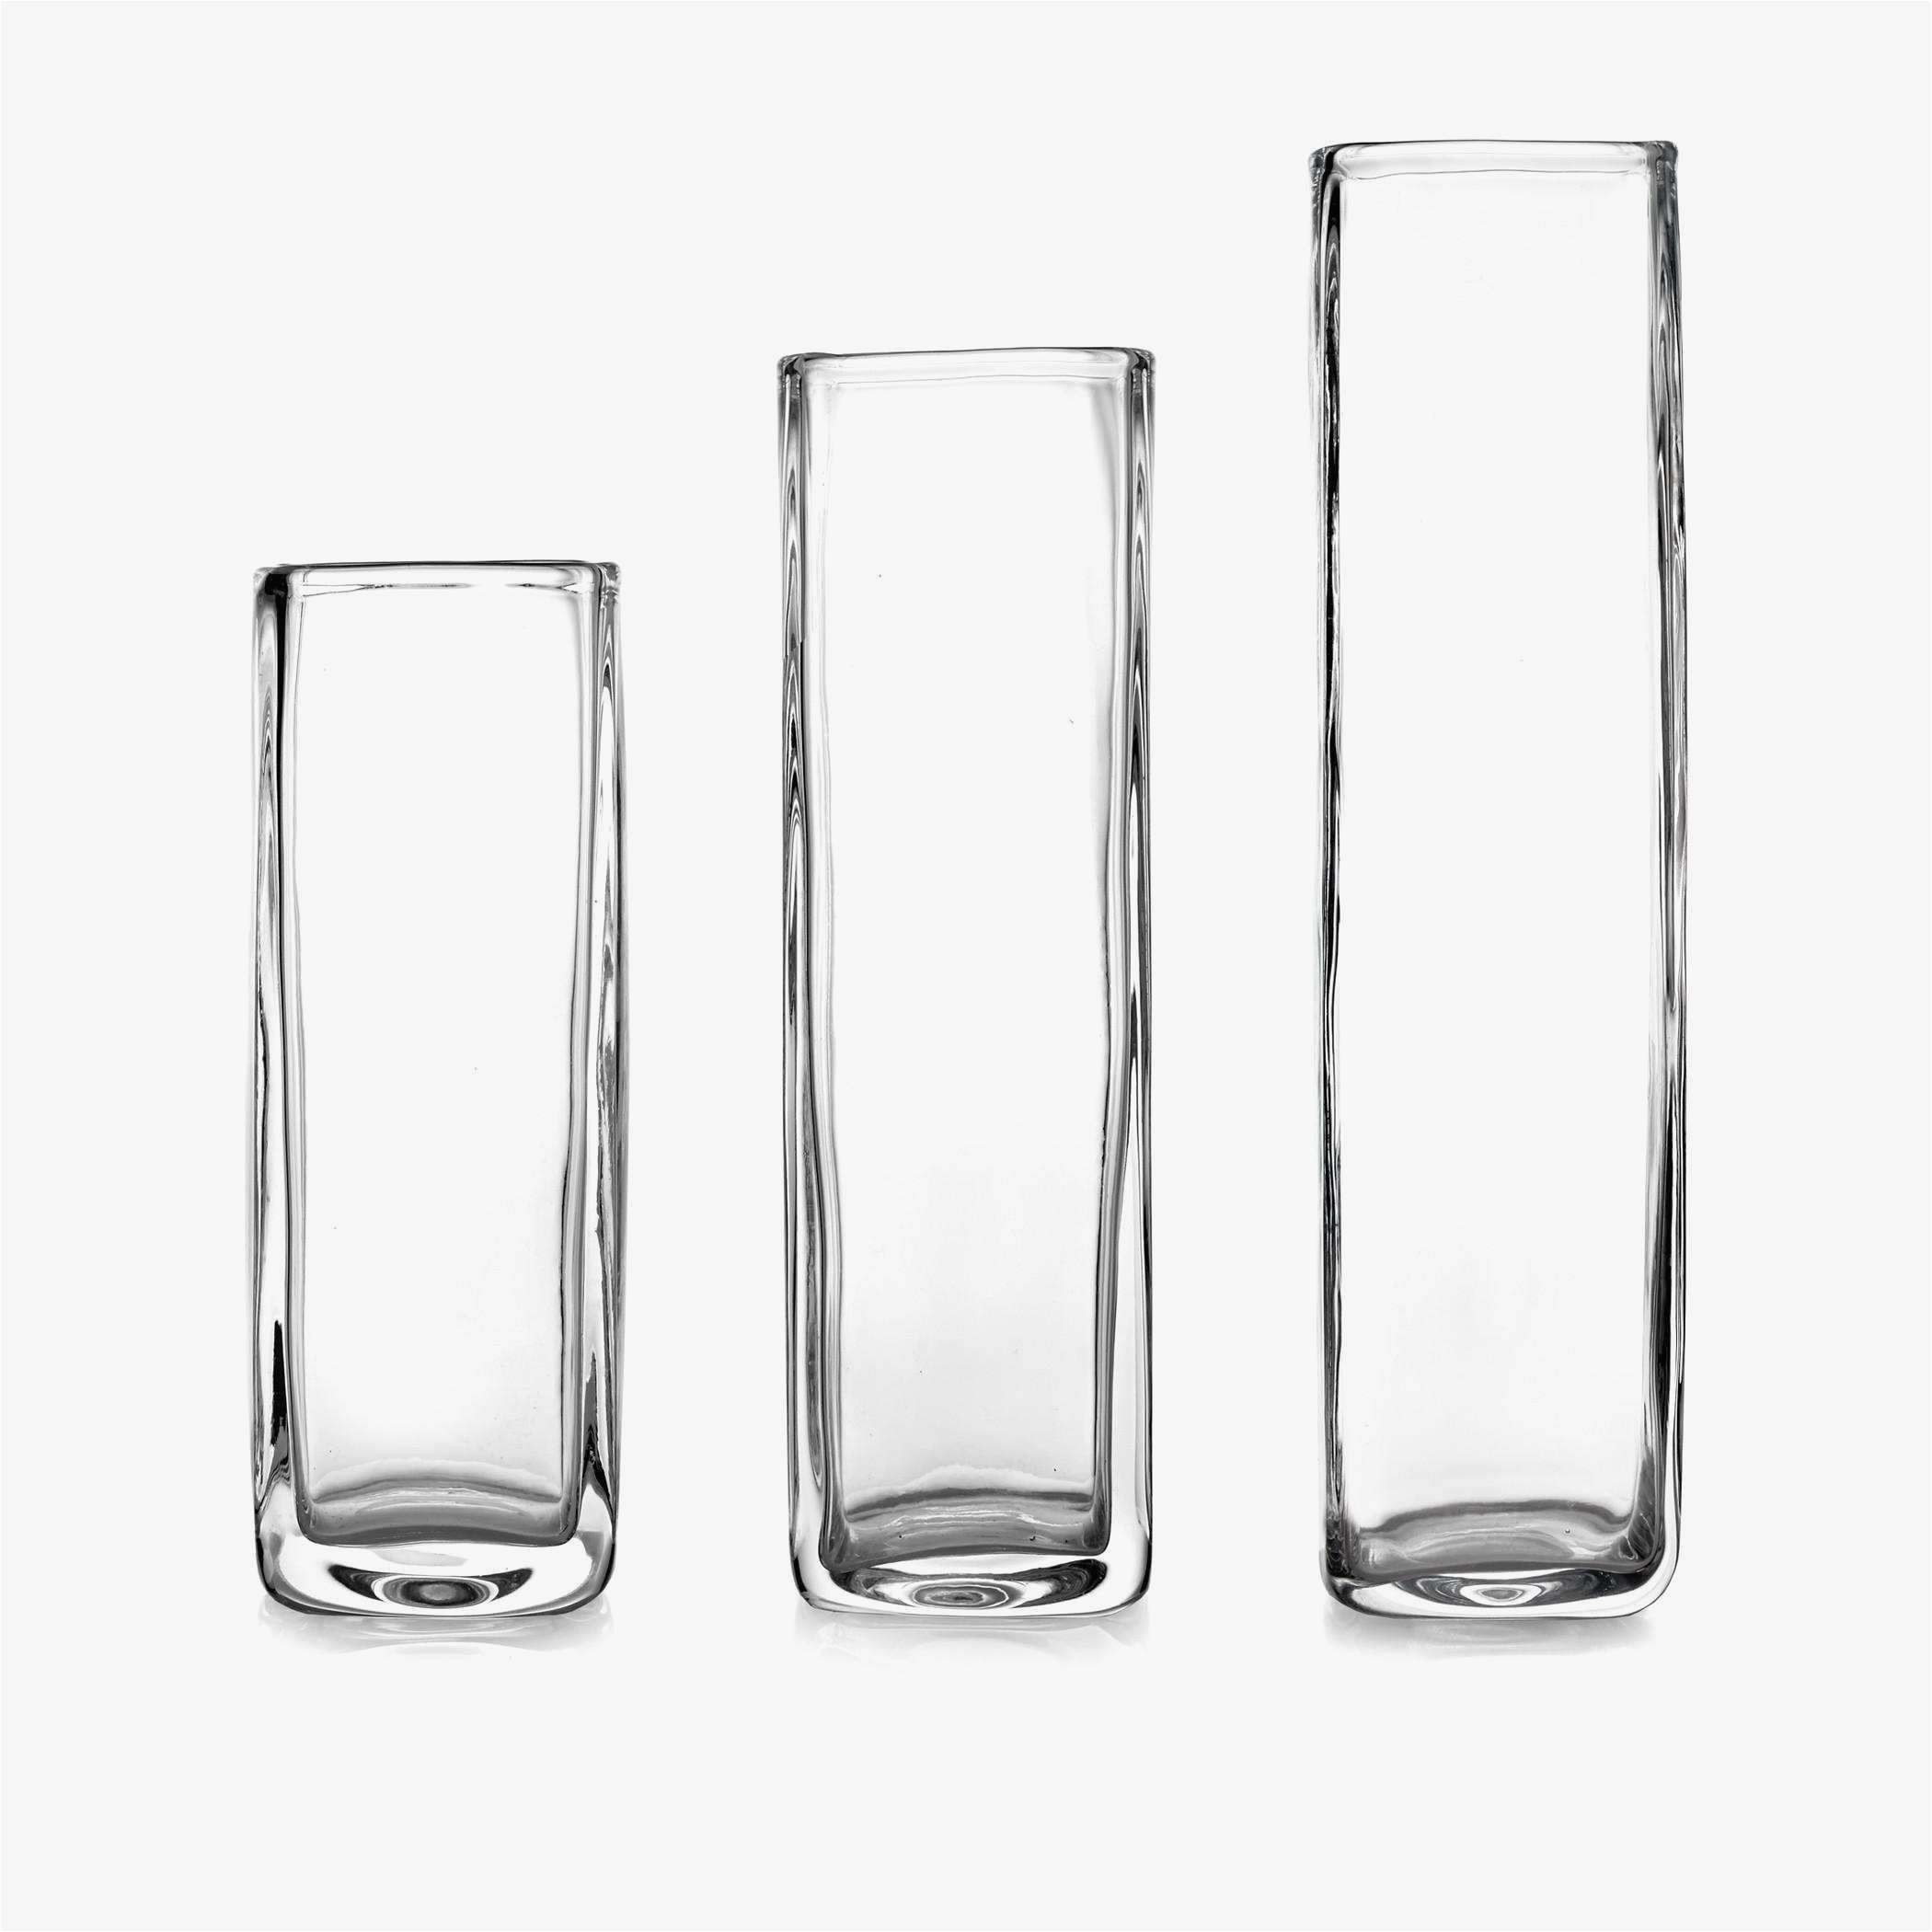 cheap tall clear glass vases of wedding arrangements latest wedding decoration stores inspirational inside wedding arrangements contemporary glass wedding centerpieces inspirational living room tall glass opinion